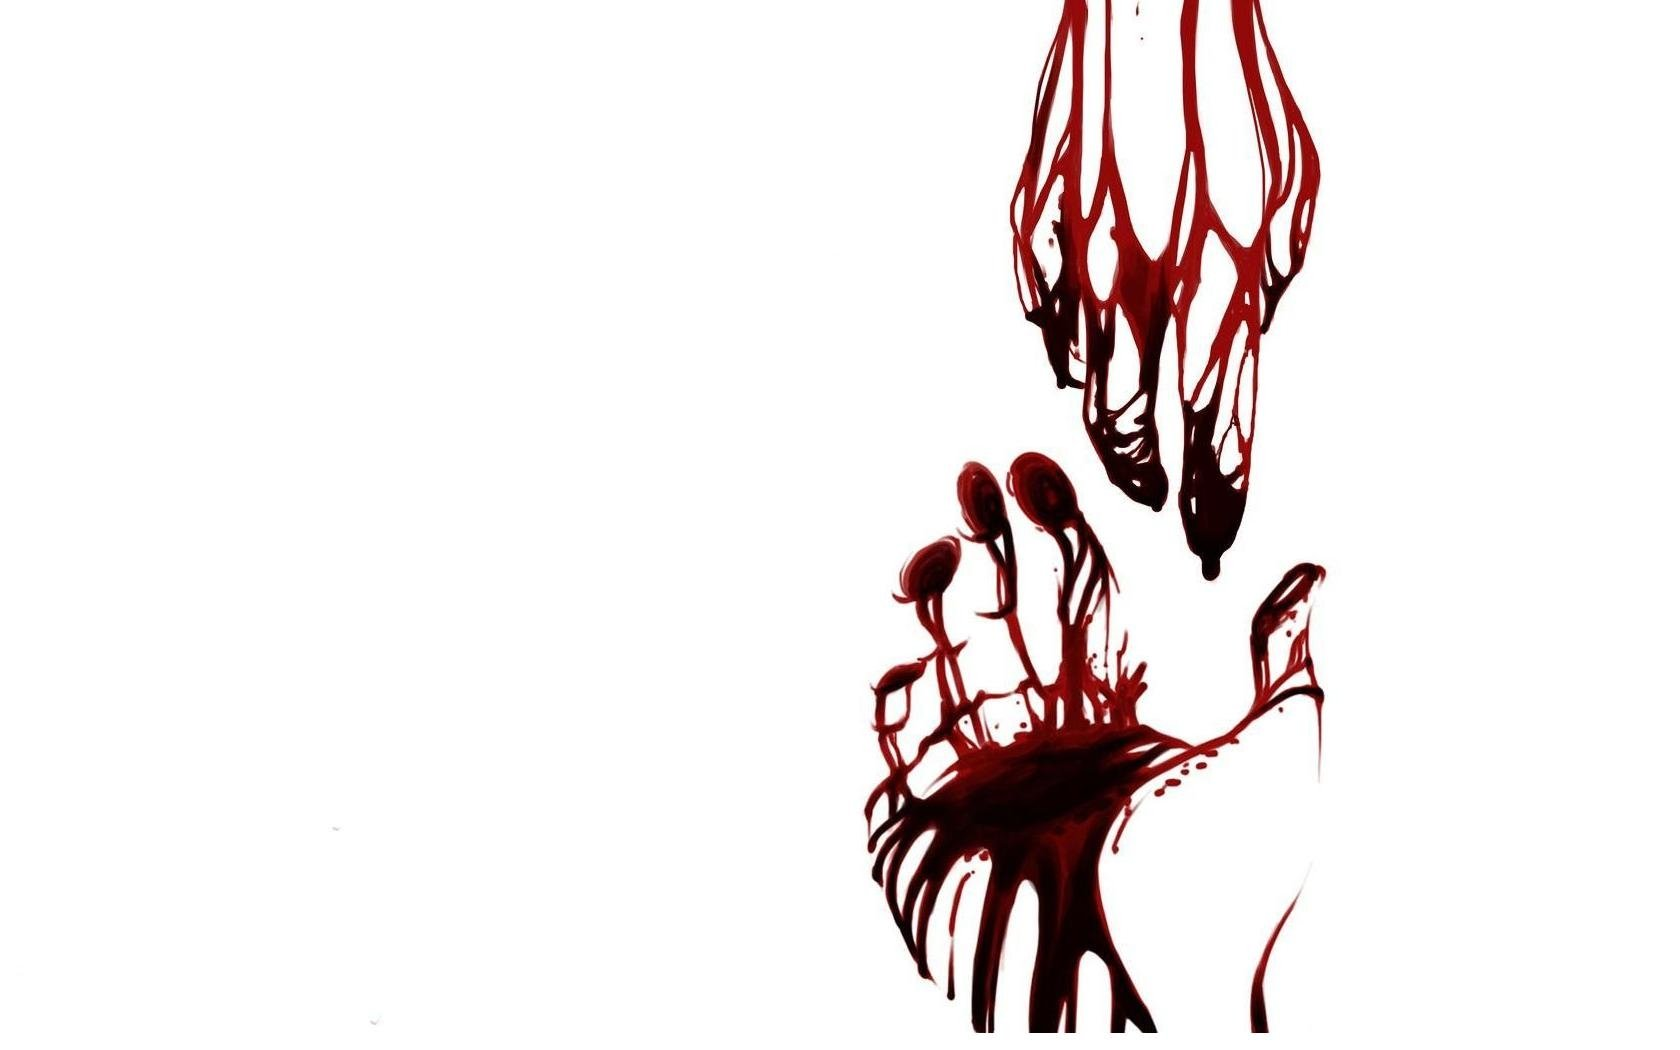 Blood Wallpaper And Background Image